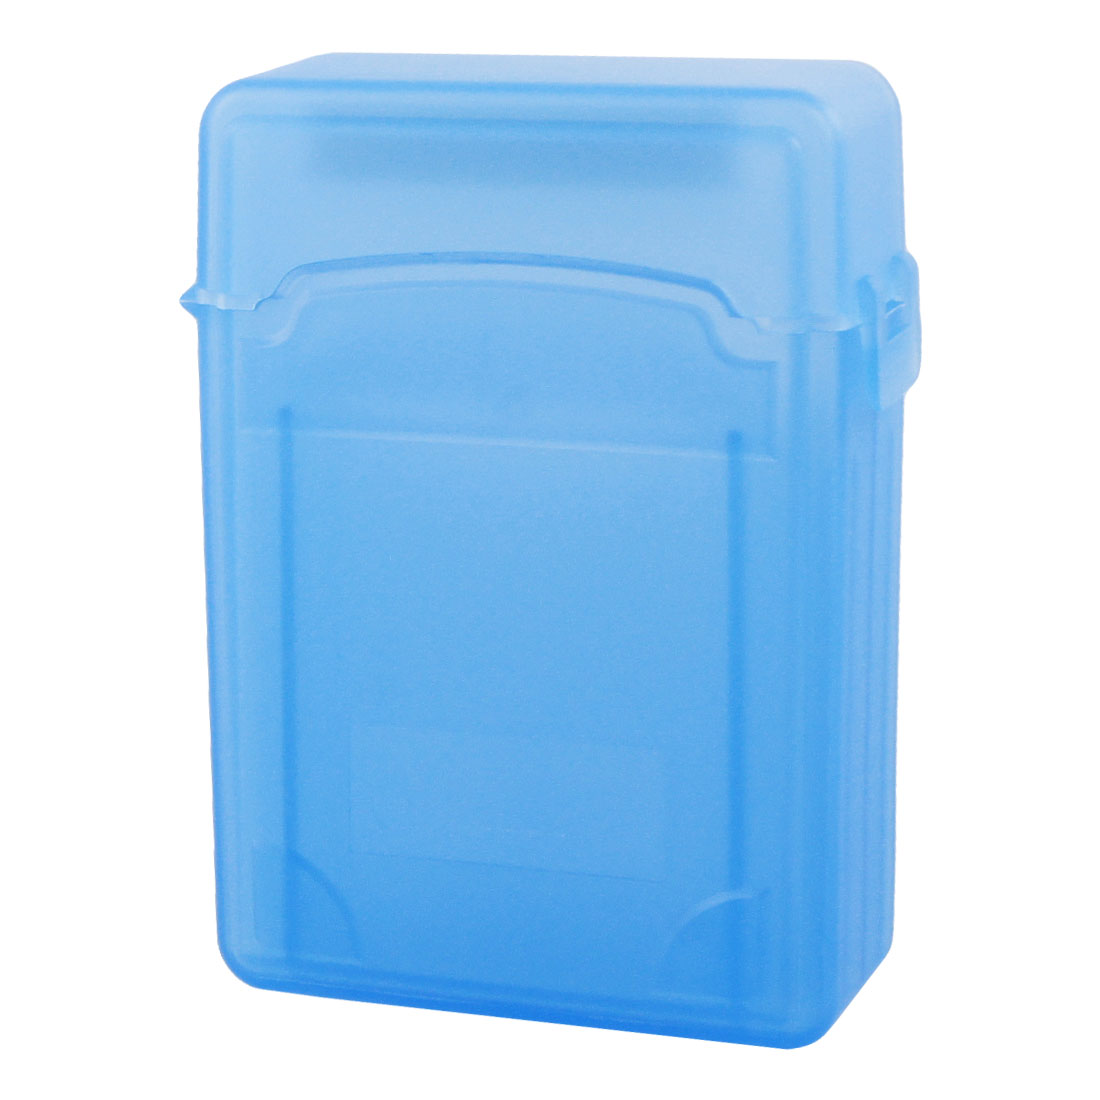 "Blue Protective 2.5"" HDD Storage Plastic Double-Deck Hard Drive Case"